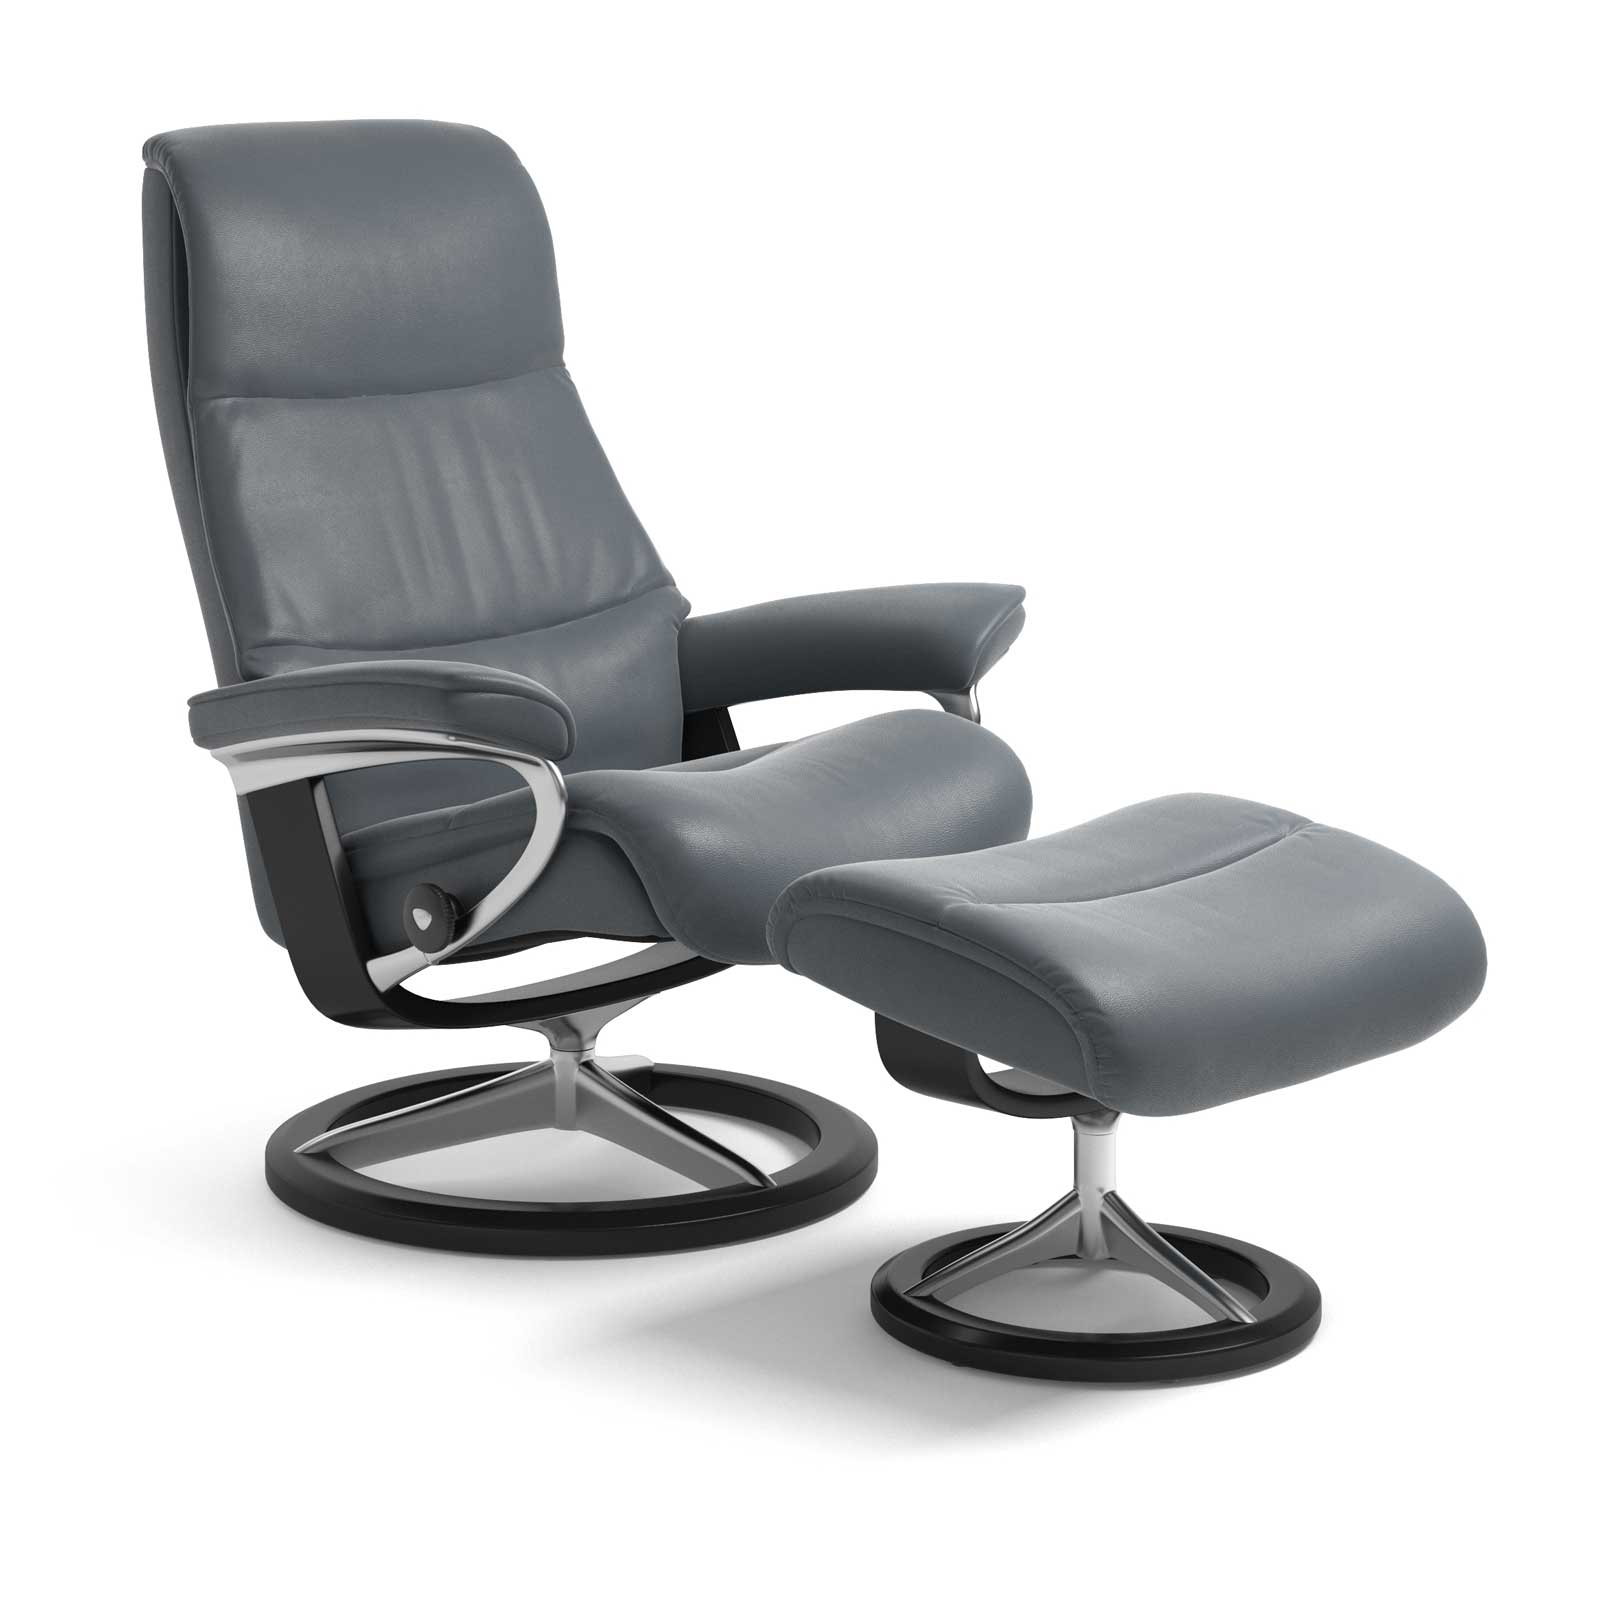 Stressless Magic Signature Sessel Stressless Sessel View Signature Batick Atlantic Blue Mit